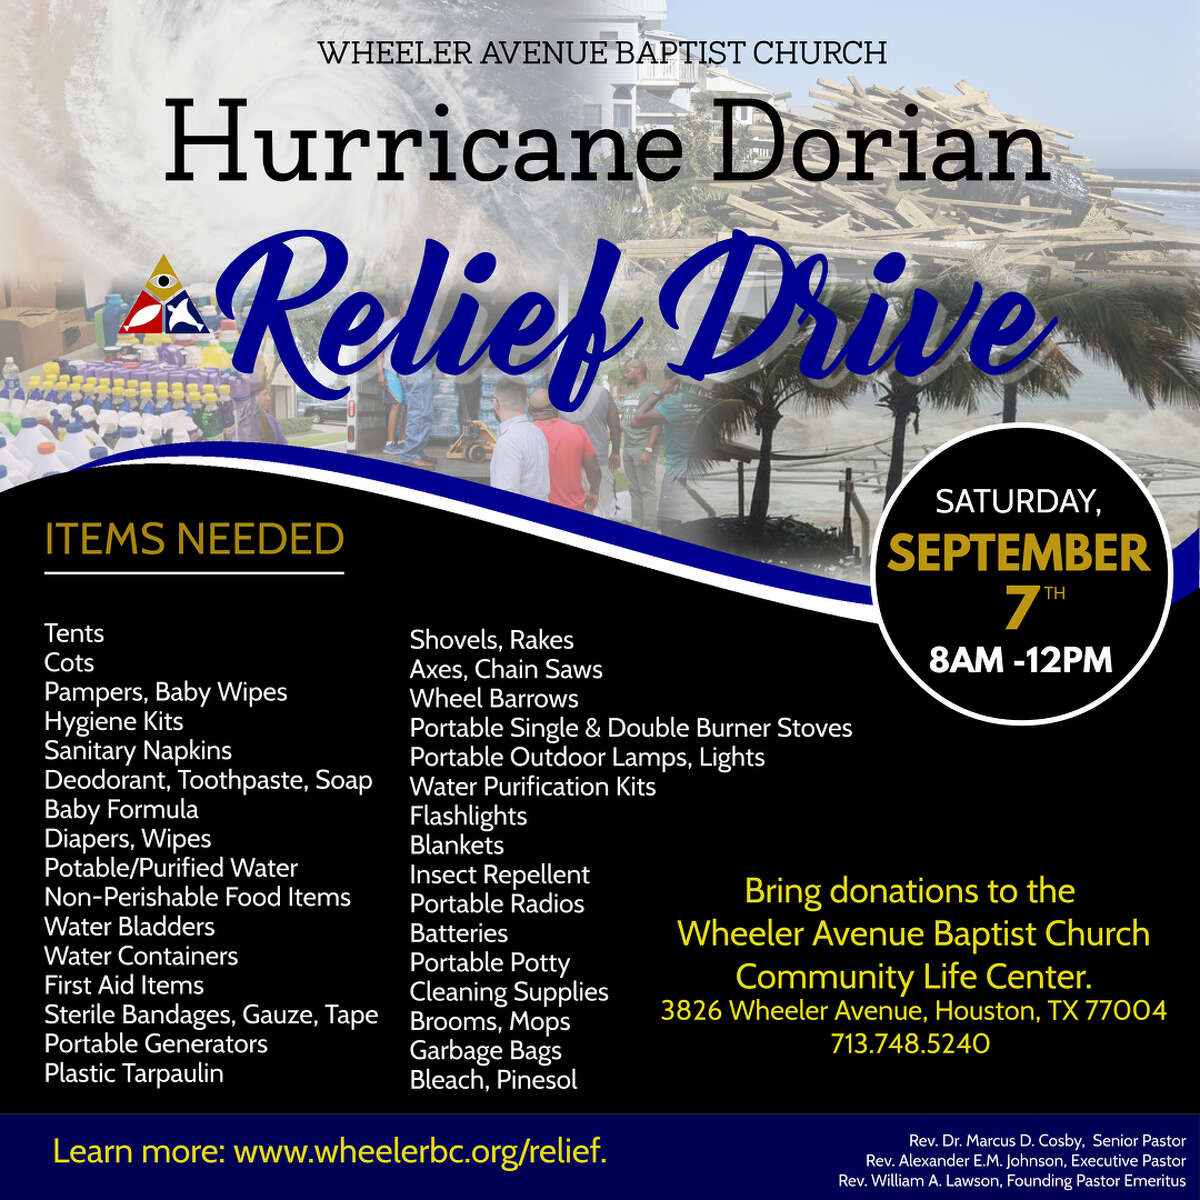 Wheeler Avenue Baptist Church will host a donation drive on Saturday, Sept. 7, from 8 a.m. to 12 p.m. in the Community Life Center, located at 3826 Wheeler Ave. Items that can be donated include tents, cots, deodorant, toothpaste, blankets and non-perishable foods.